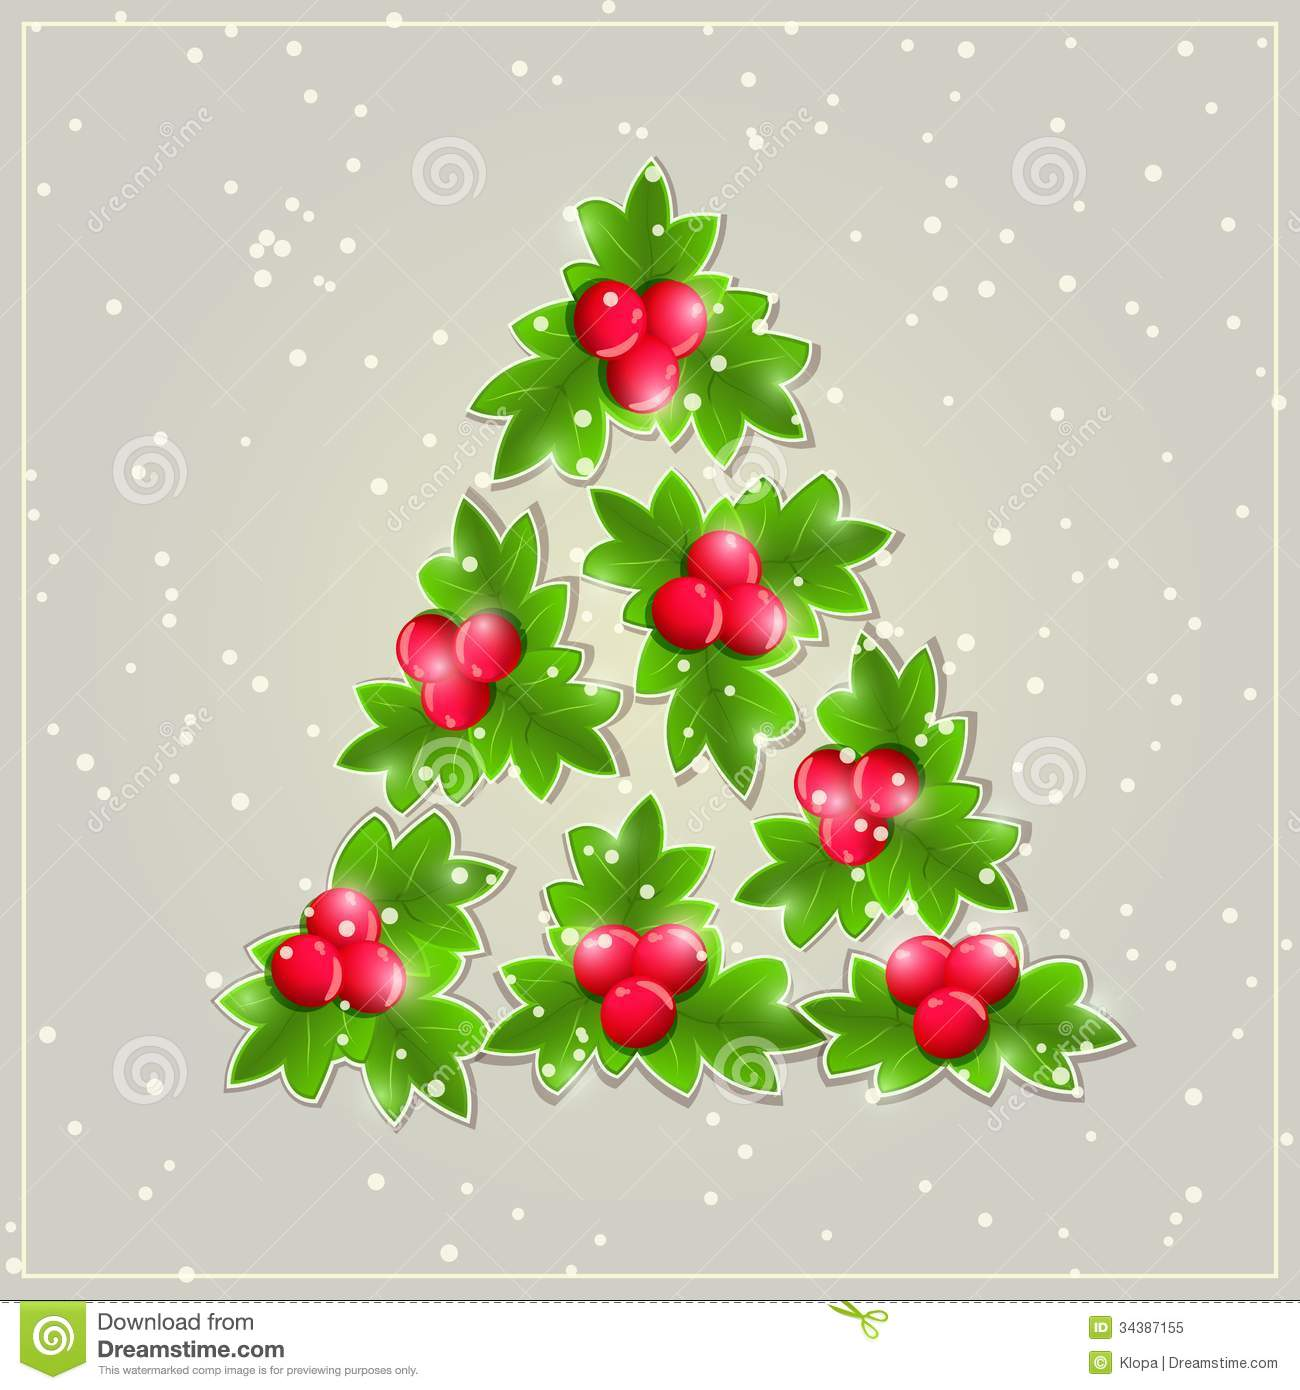 Search results for christmas tree green clip art for Red green christmas tree